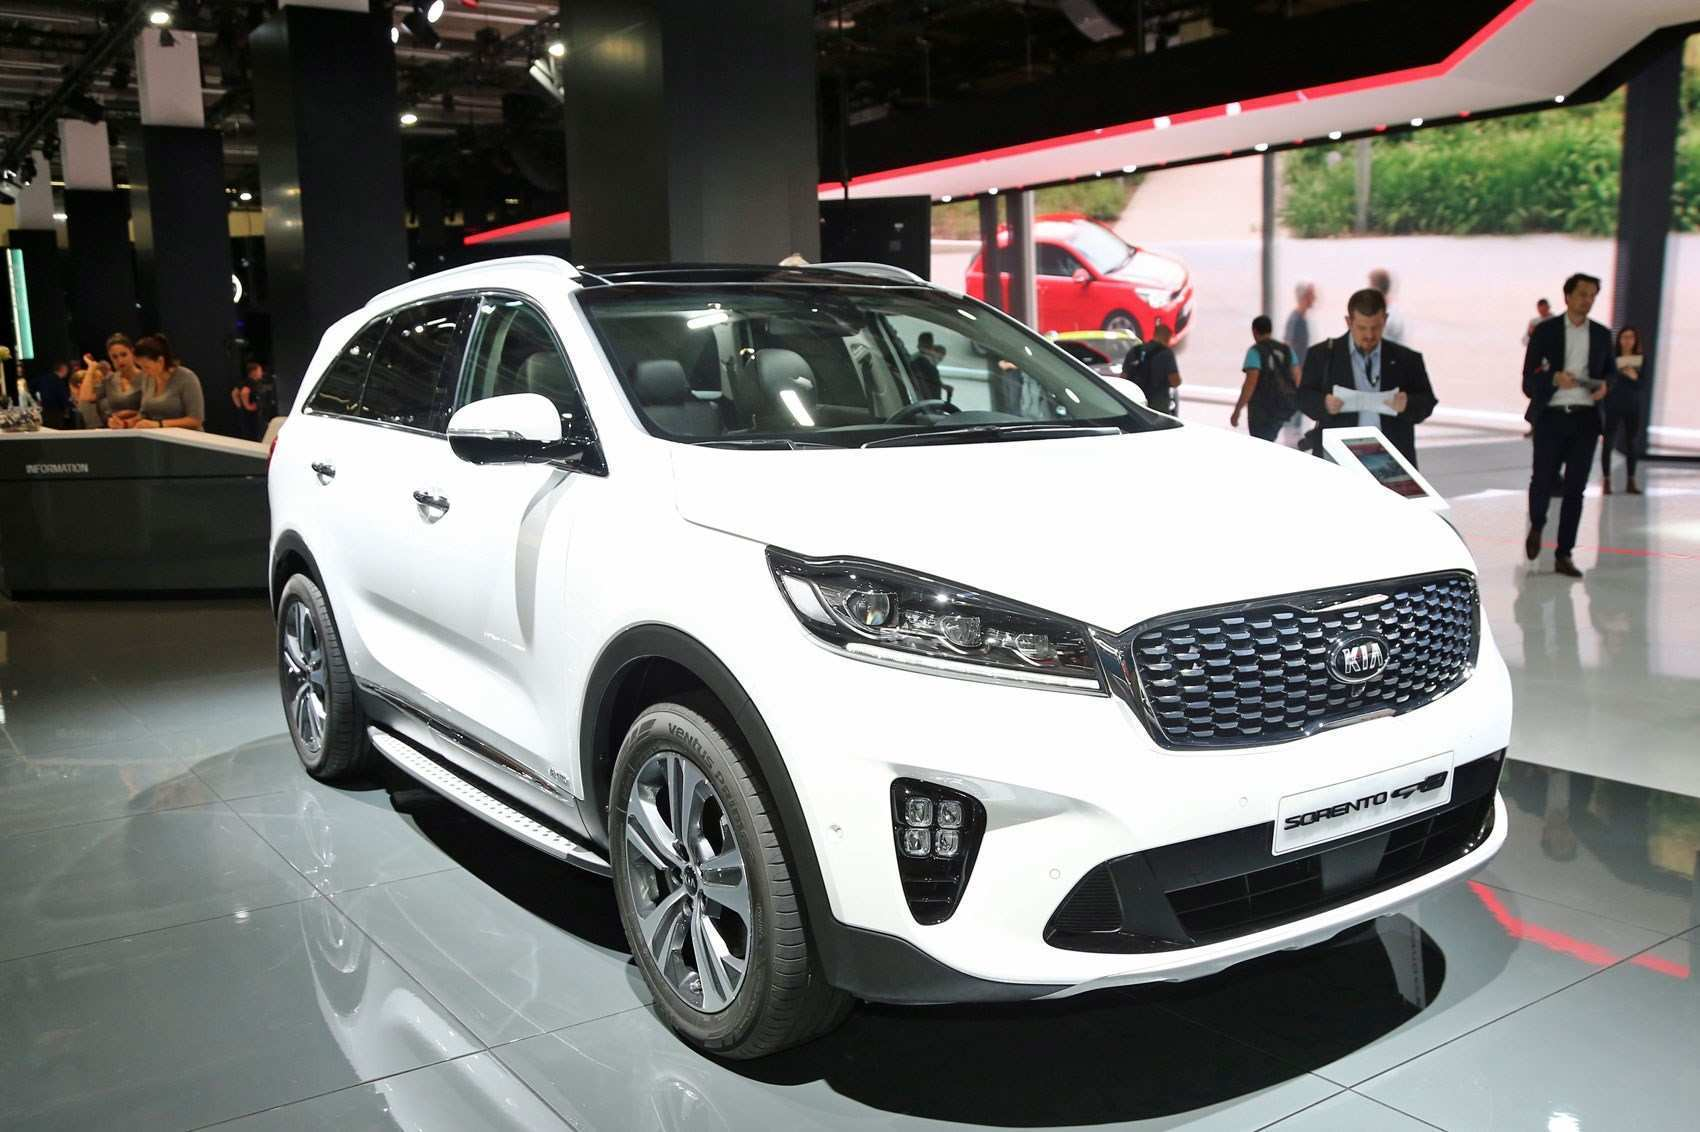 37 Best Review 2020 Kia Sorento Brochure Ratings with 2020 Kia Sorento Brochure